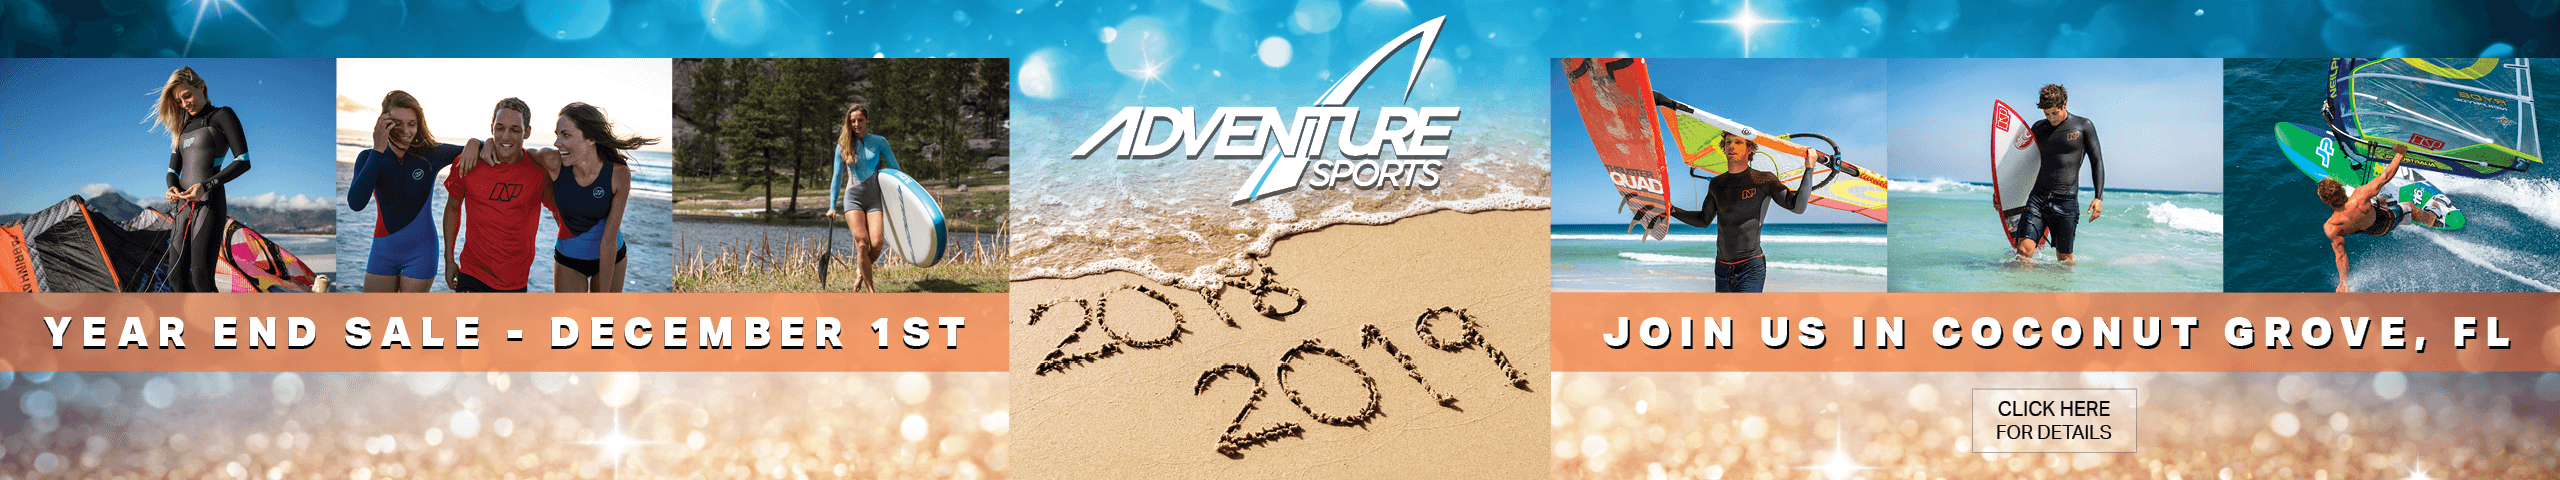 End of year sales - Adventure Sports  - Coconut  Grove